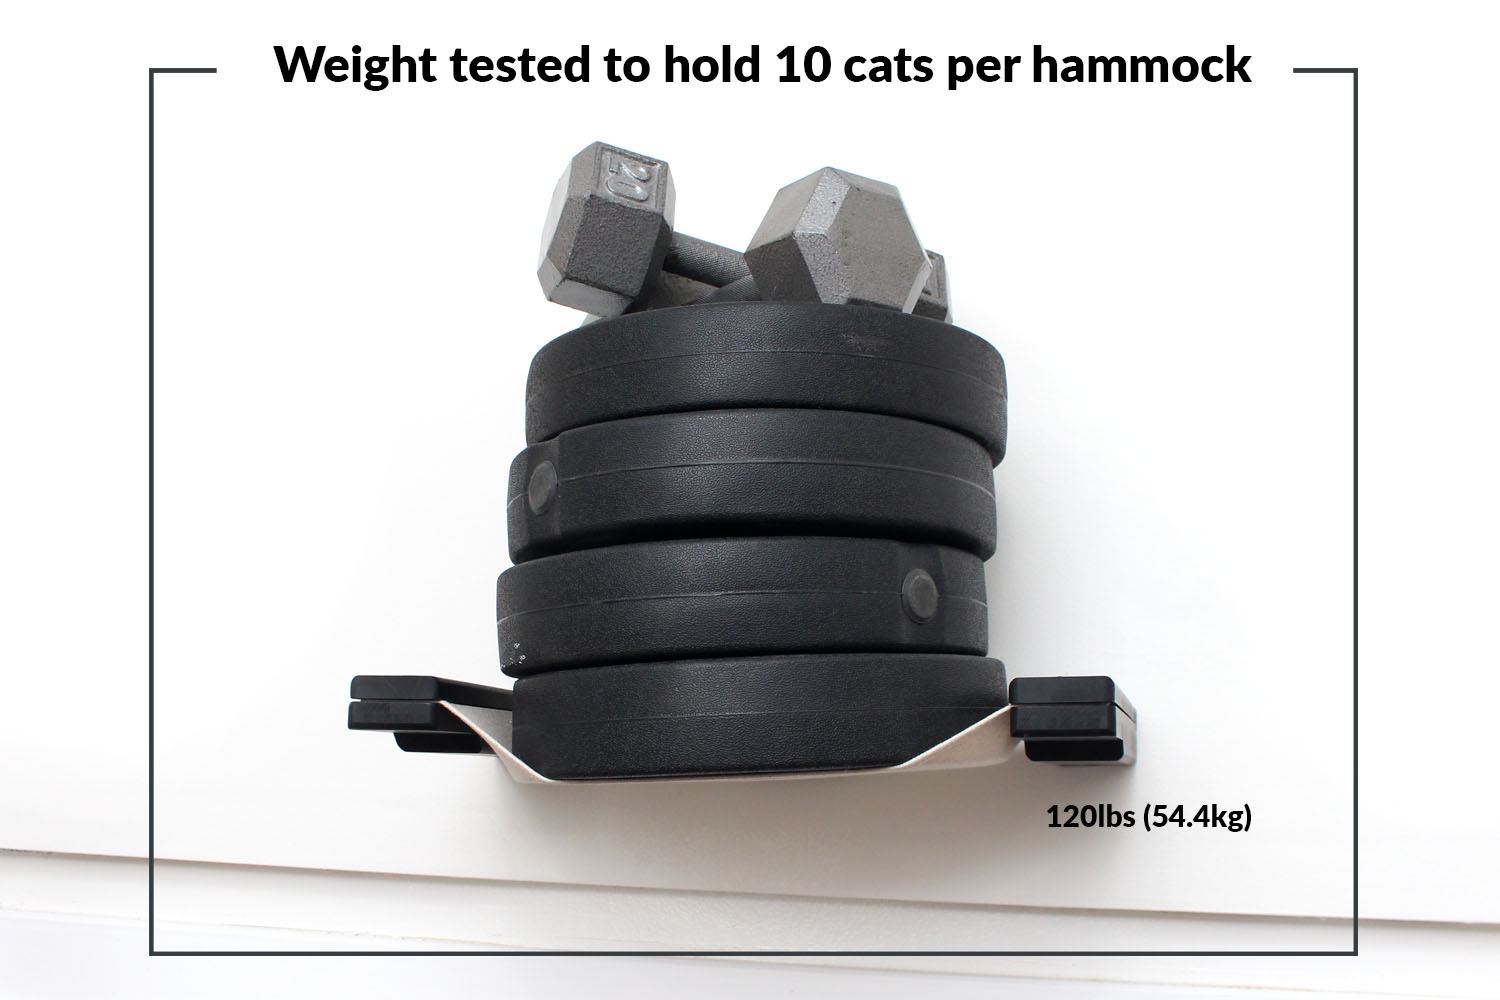 This photo displays one of our hammocks being weight tested. This image shows the hammock holding 120lbs (54.4kg).